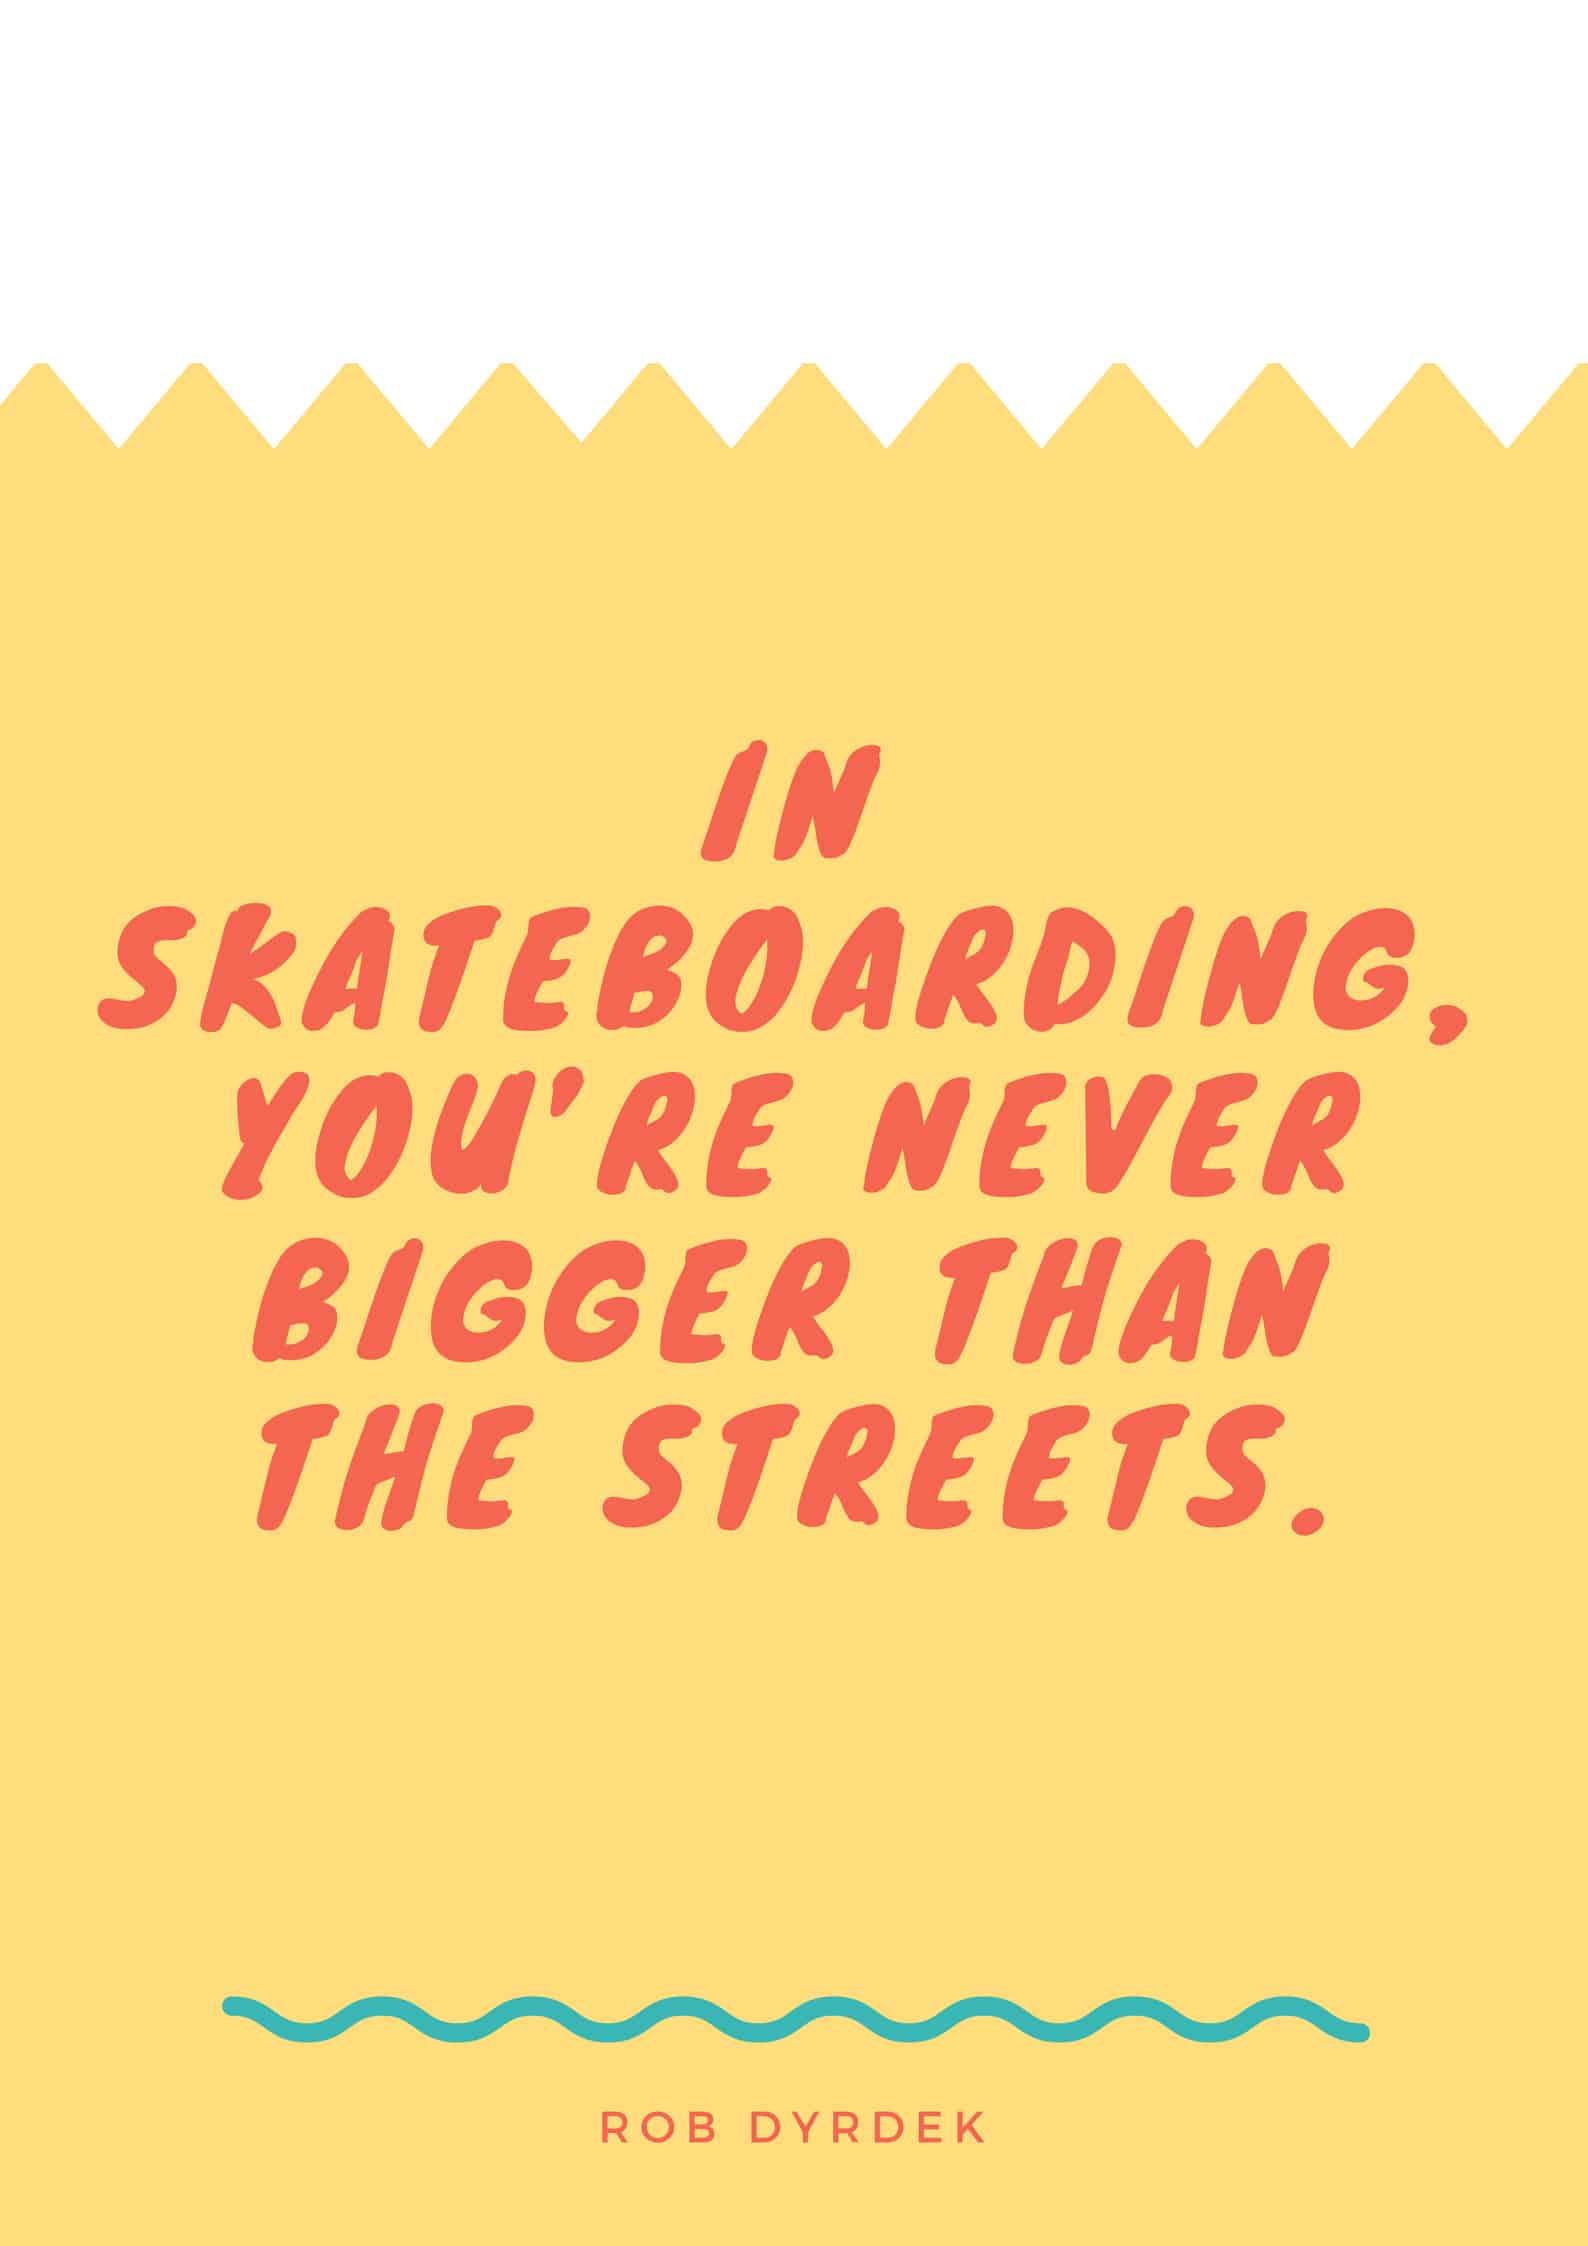 In skateboarding, you're never bigger than the streets.